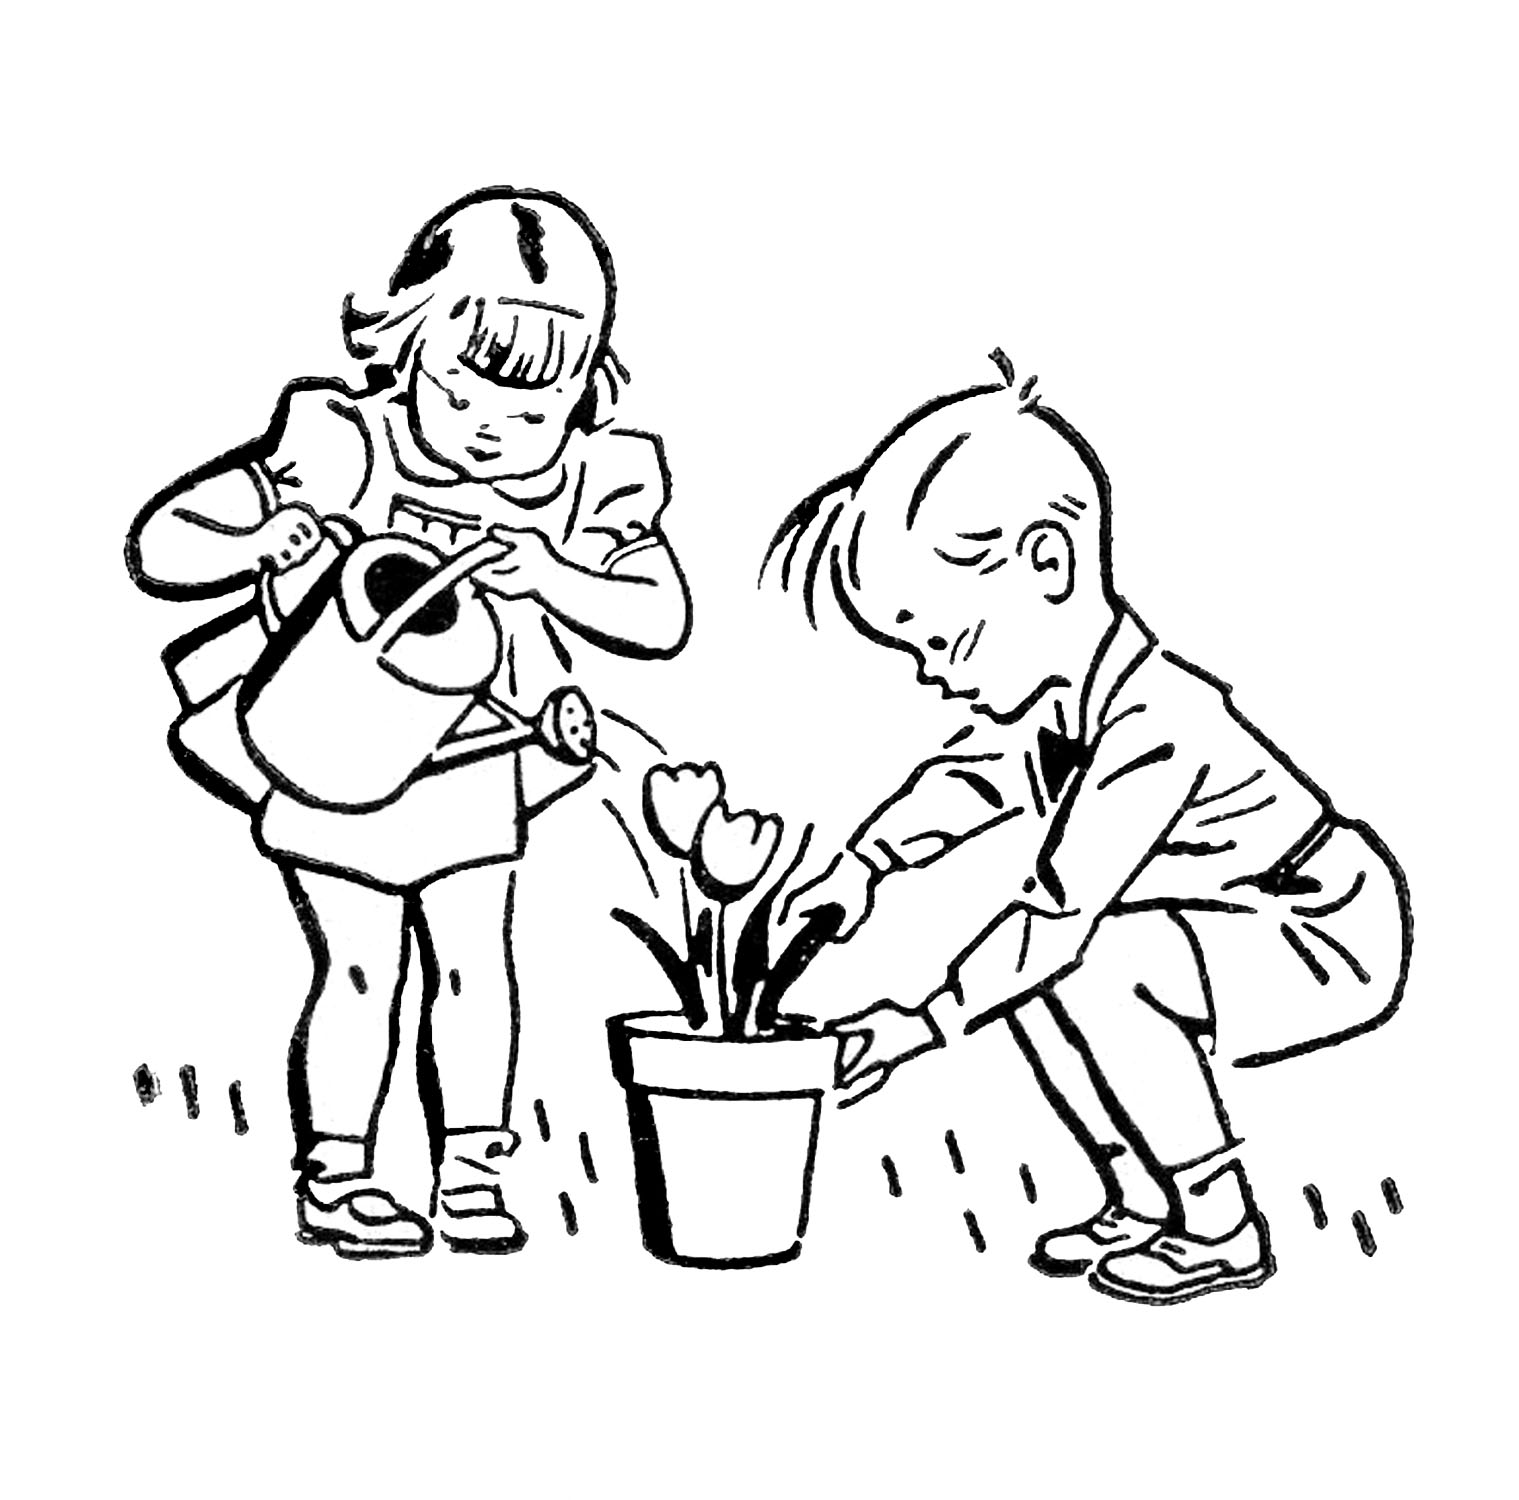 Retro images cute kids. Gardening clipart black and white